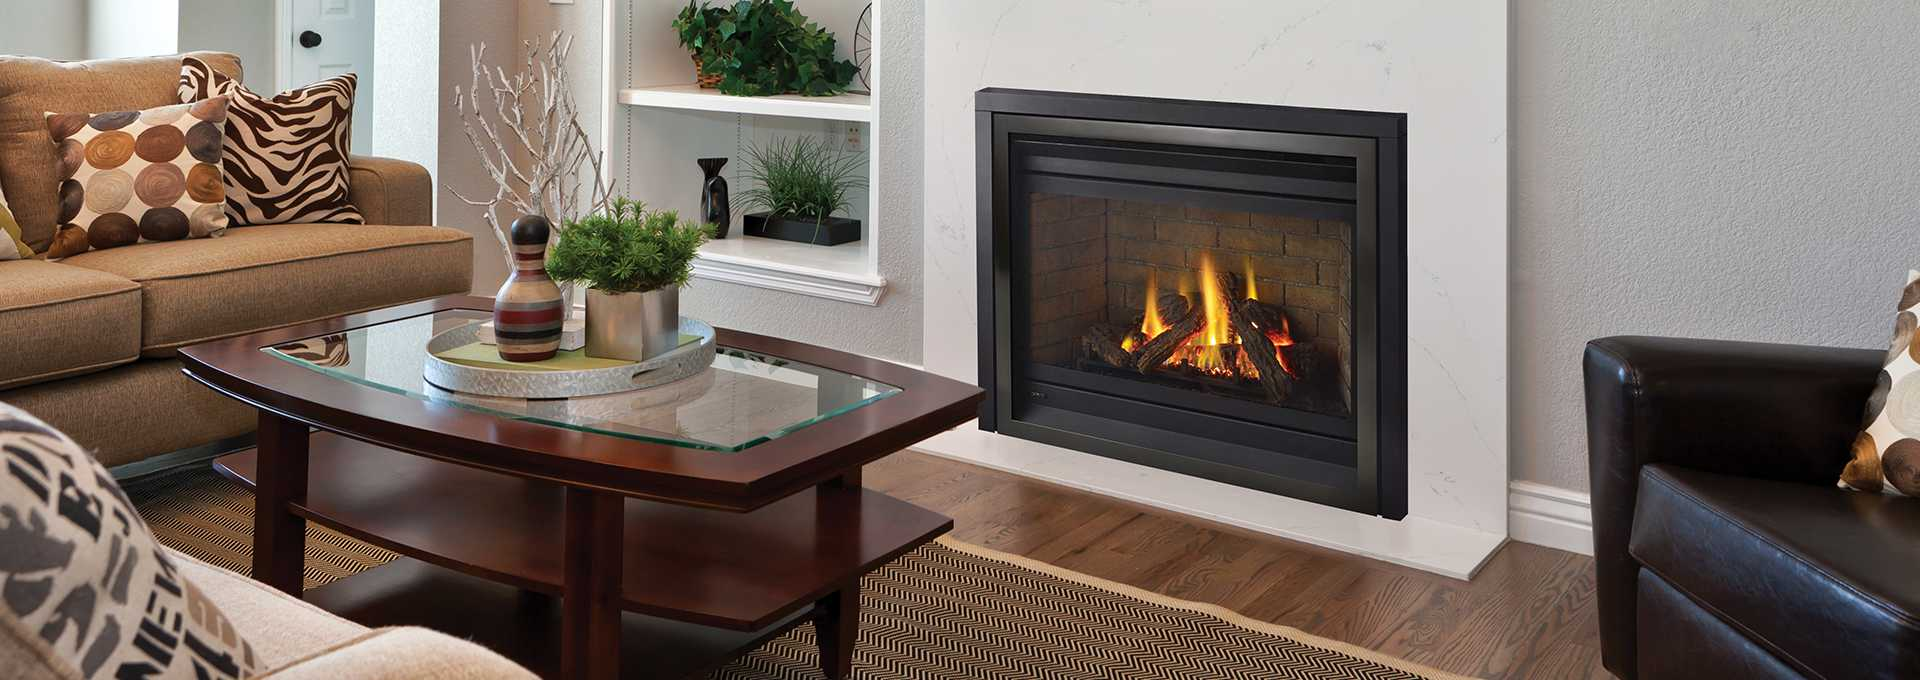 Gas Fireplace Store Regency Panorama P36 Gas Fireplace Welenco Stove Store